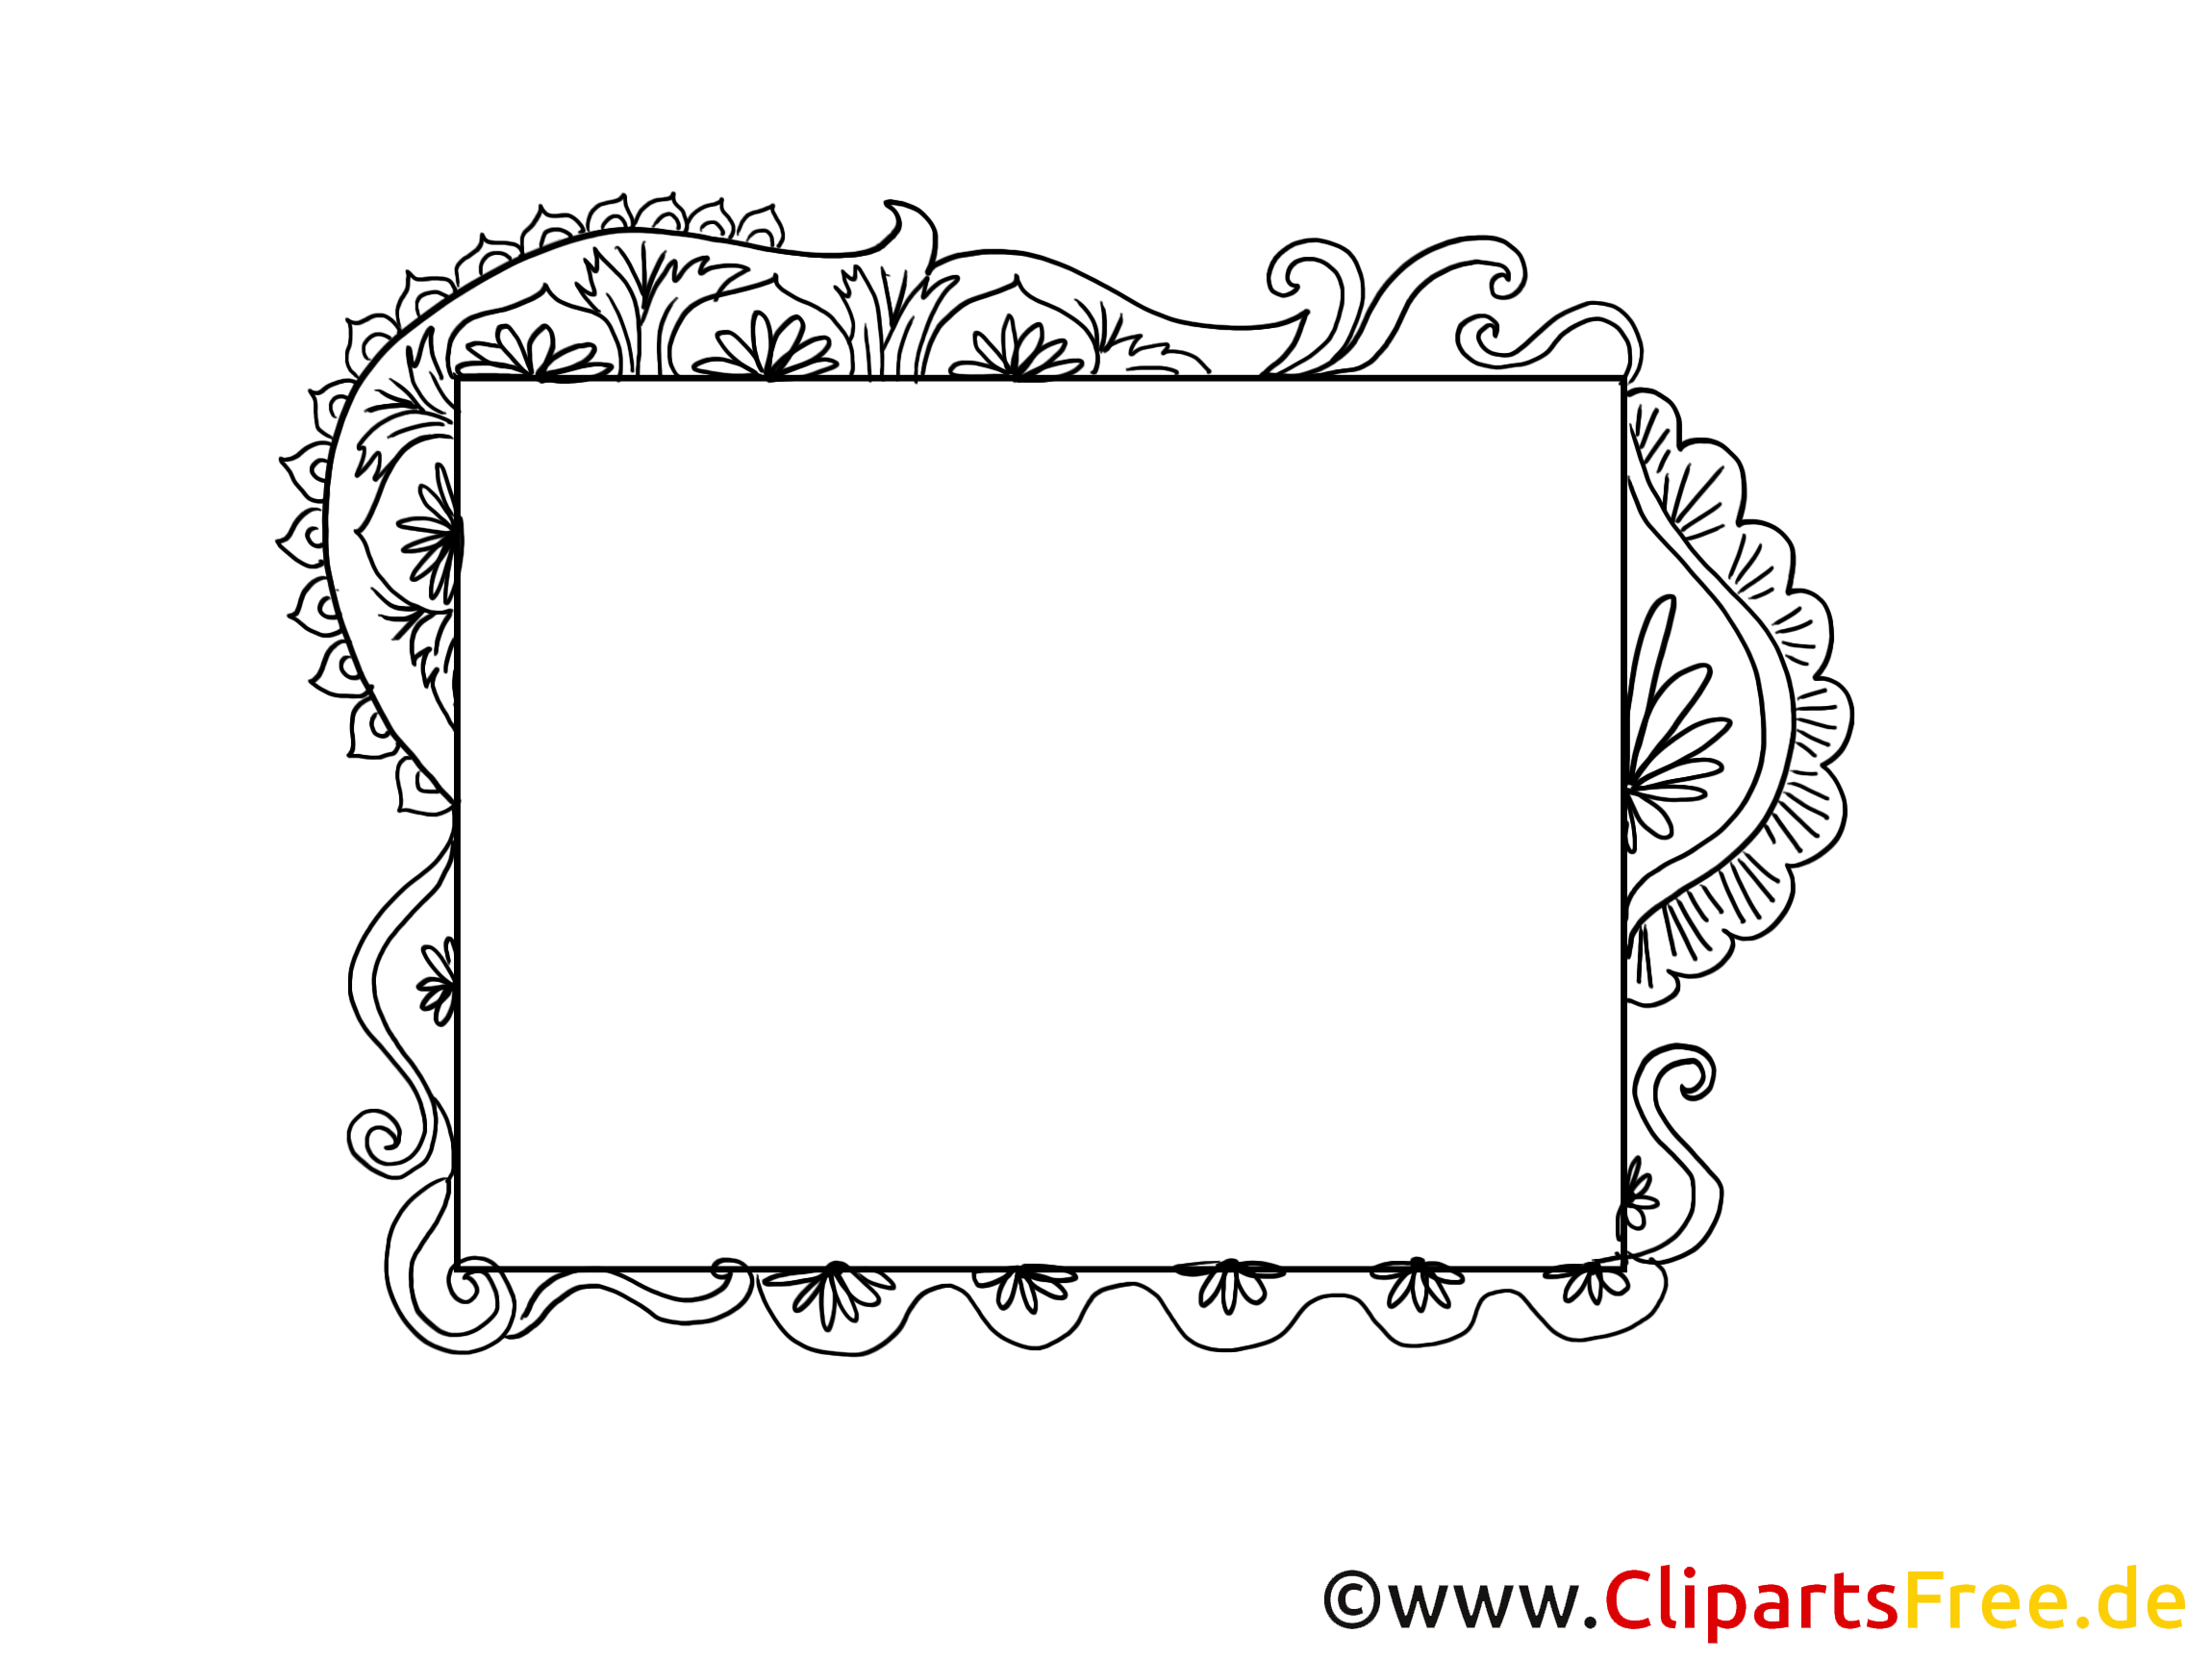 ornement clipart cadre dessins gratuits cadres dessin picture image graphic clip art. Black Bedroom Furniture Sets. Home Design Ideas